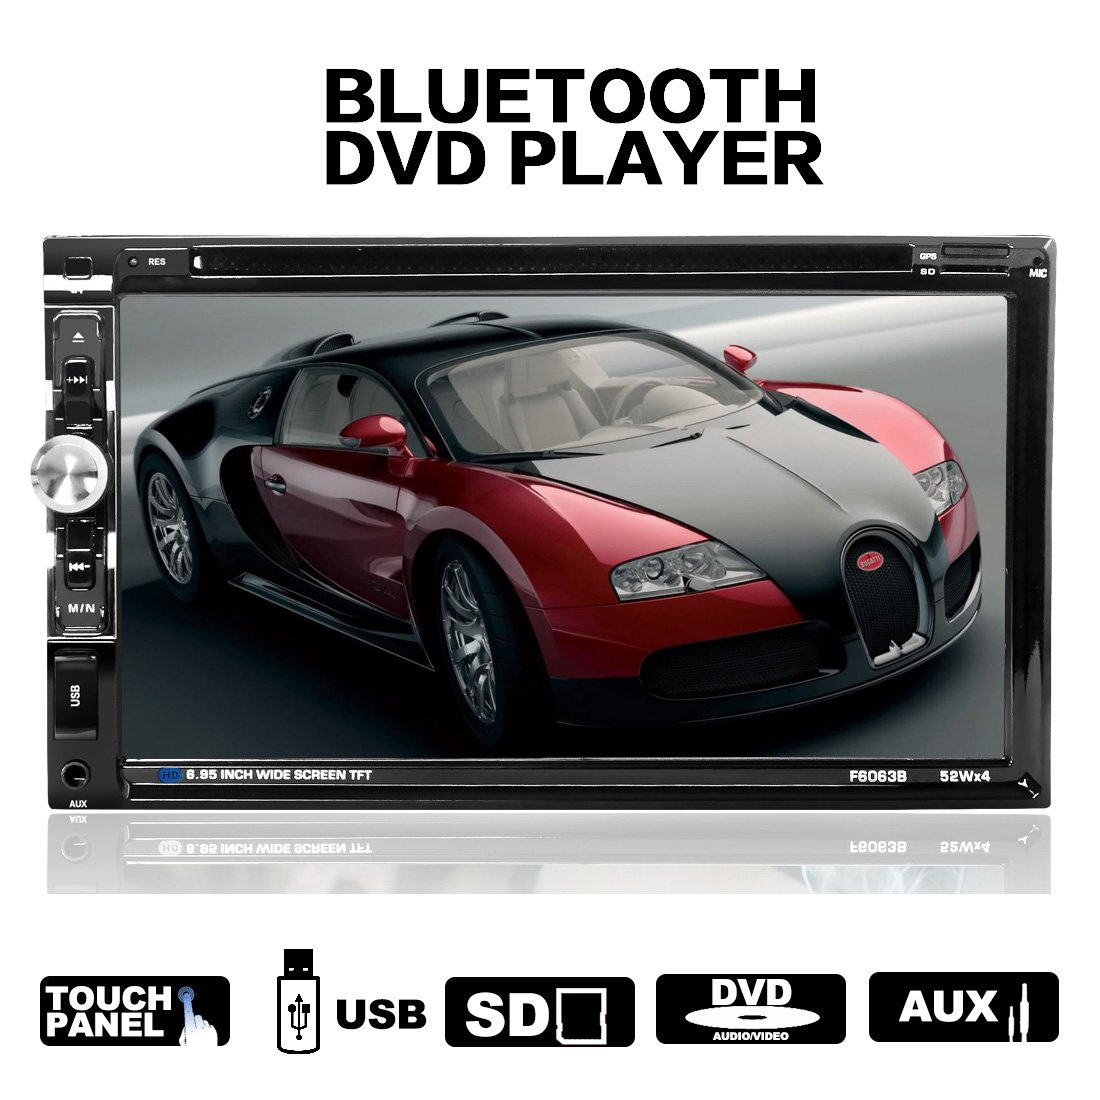 LSLYA(TM) Steering Wheel Control 2 din HD In dash Car stereo DVD CD MP5 MP4 MP3 Player Radio Video Audio Bluetooth 6.95 Inch Touch Screen SD,USB,Radio,FM support with remote (6063B)